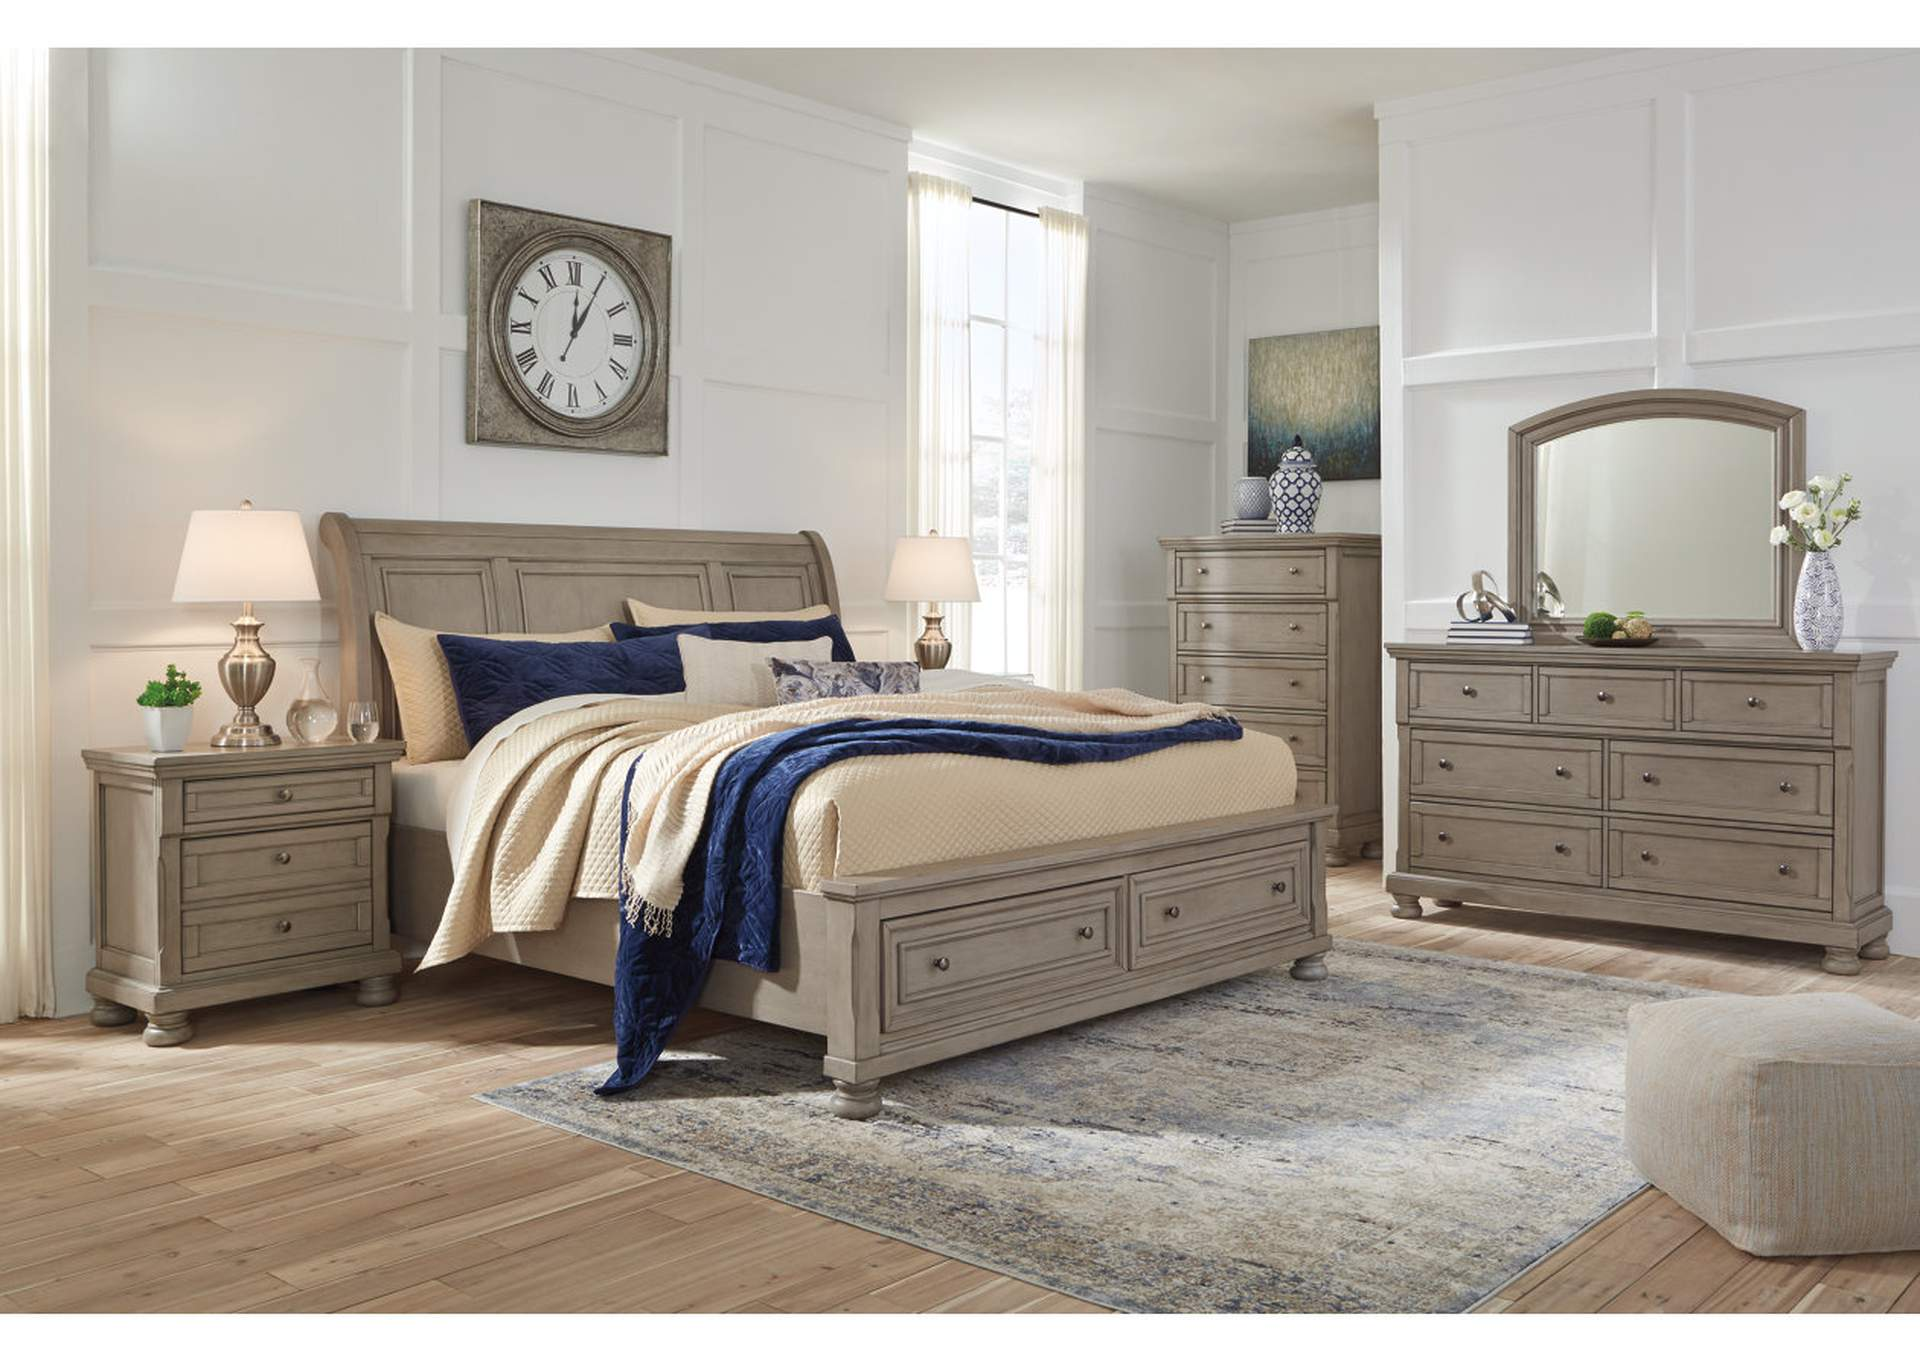 Lettner Light Gray Queen Sleigh Storage Bed w/Dresser and Mirror,Signature Design By Ashley